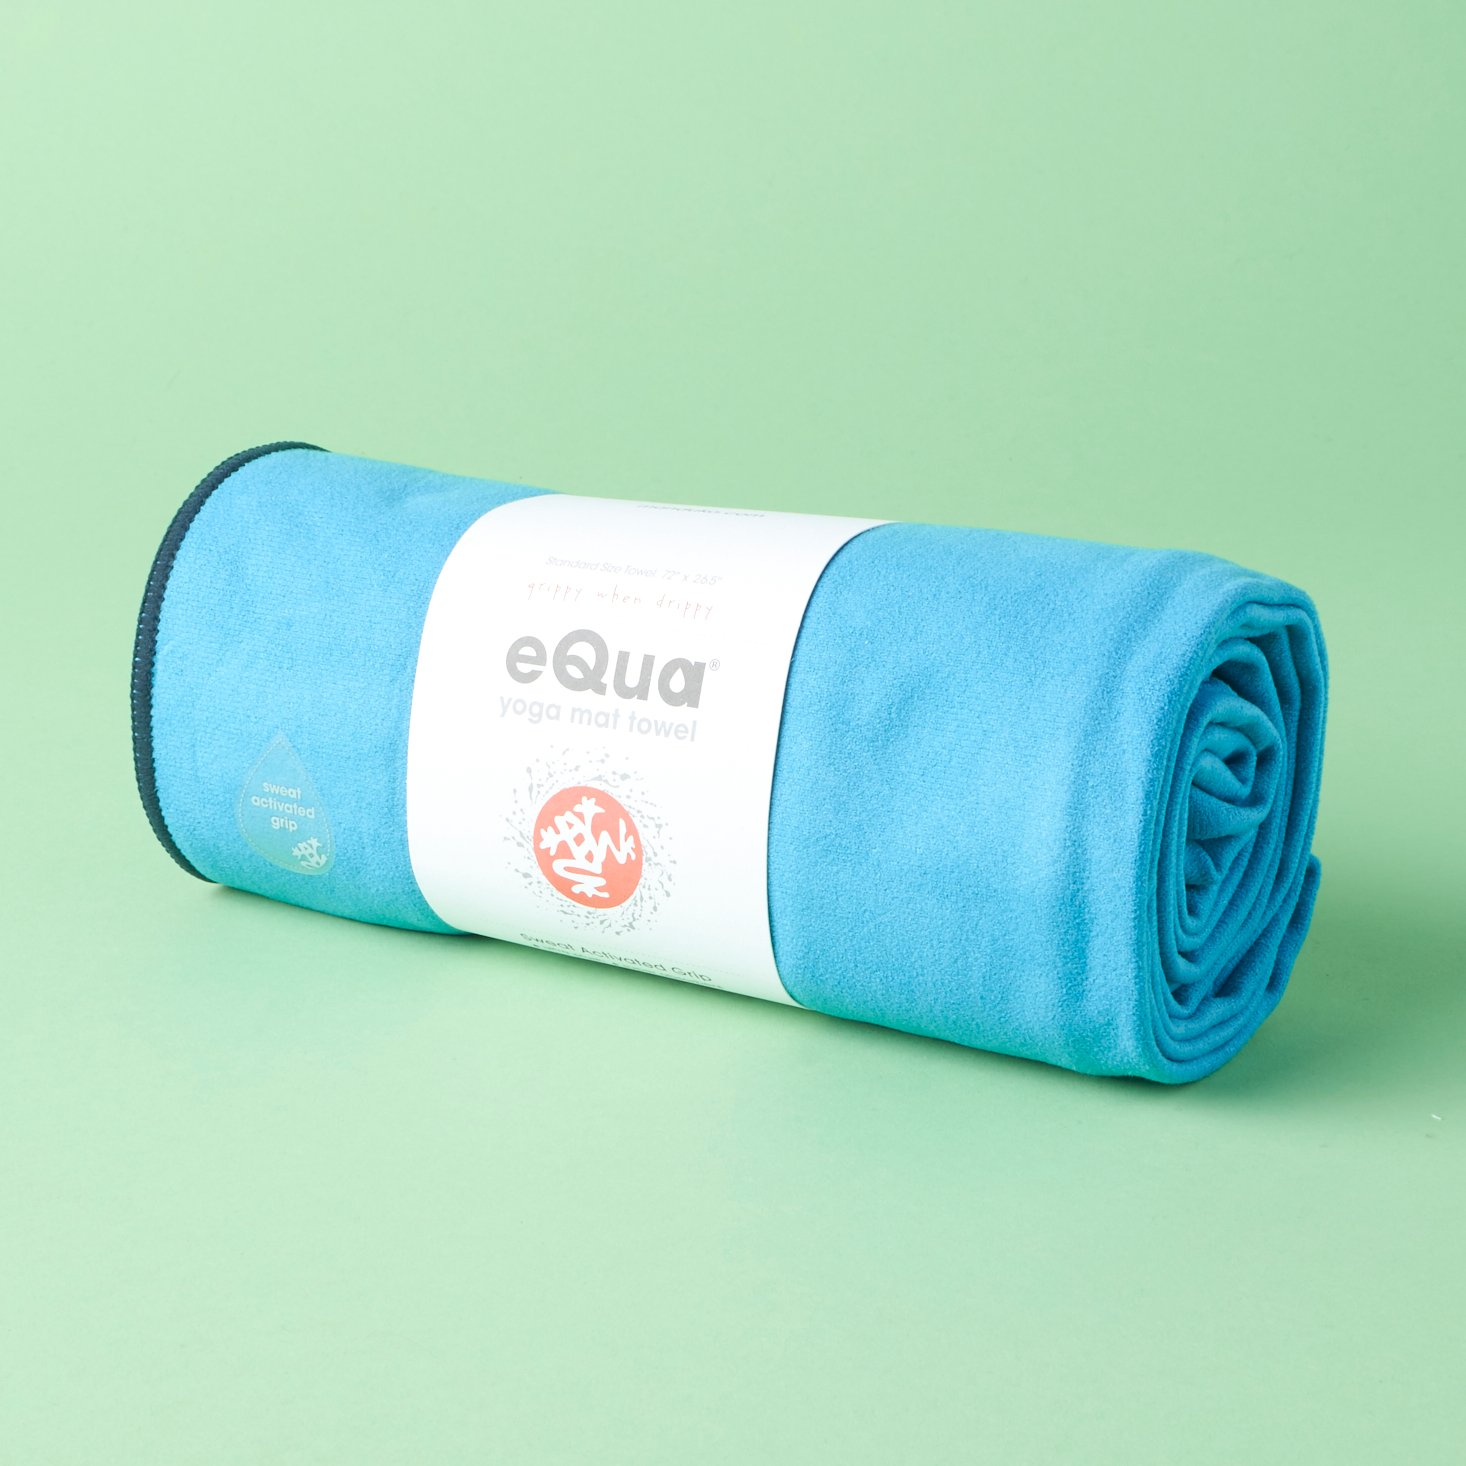 Manduka coupon code